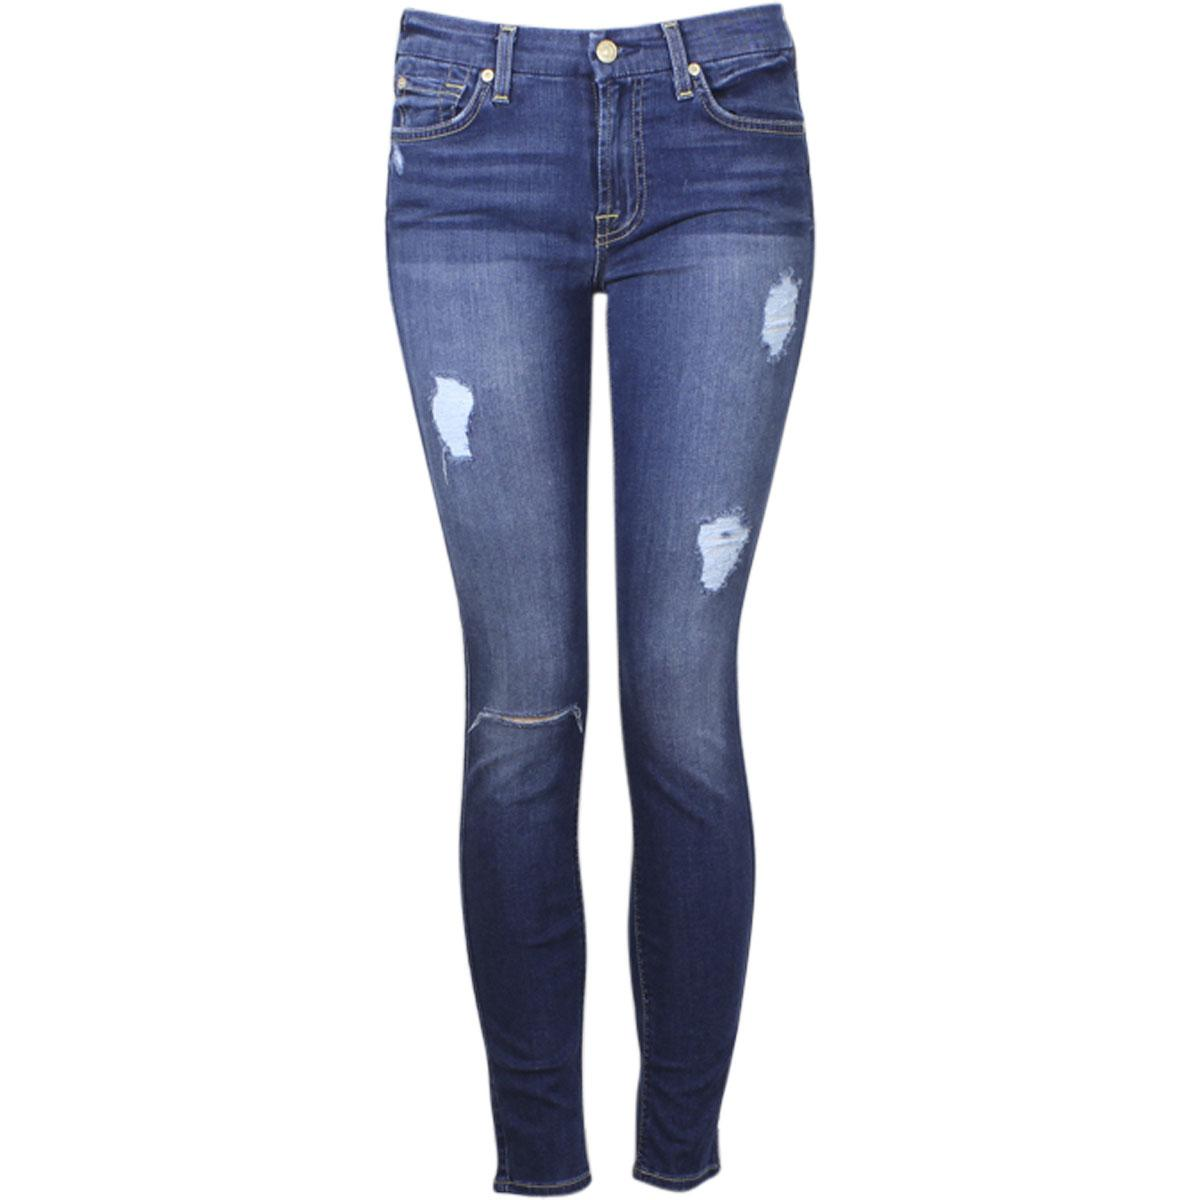 Image of 7 For All Mankind Women's The Ankle Skinny With Destroy (B)Air Denim Jeans - Blue - 28 (5/6)